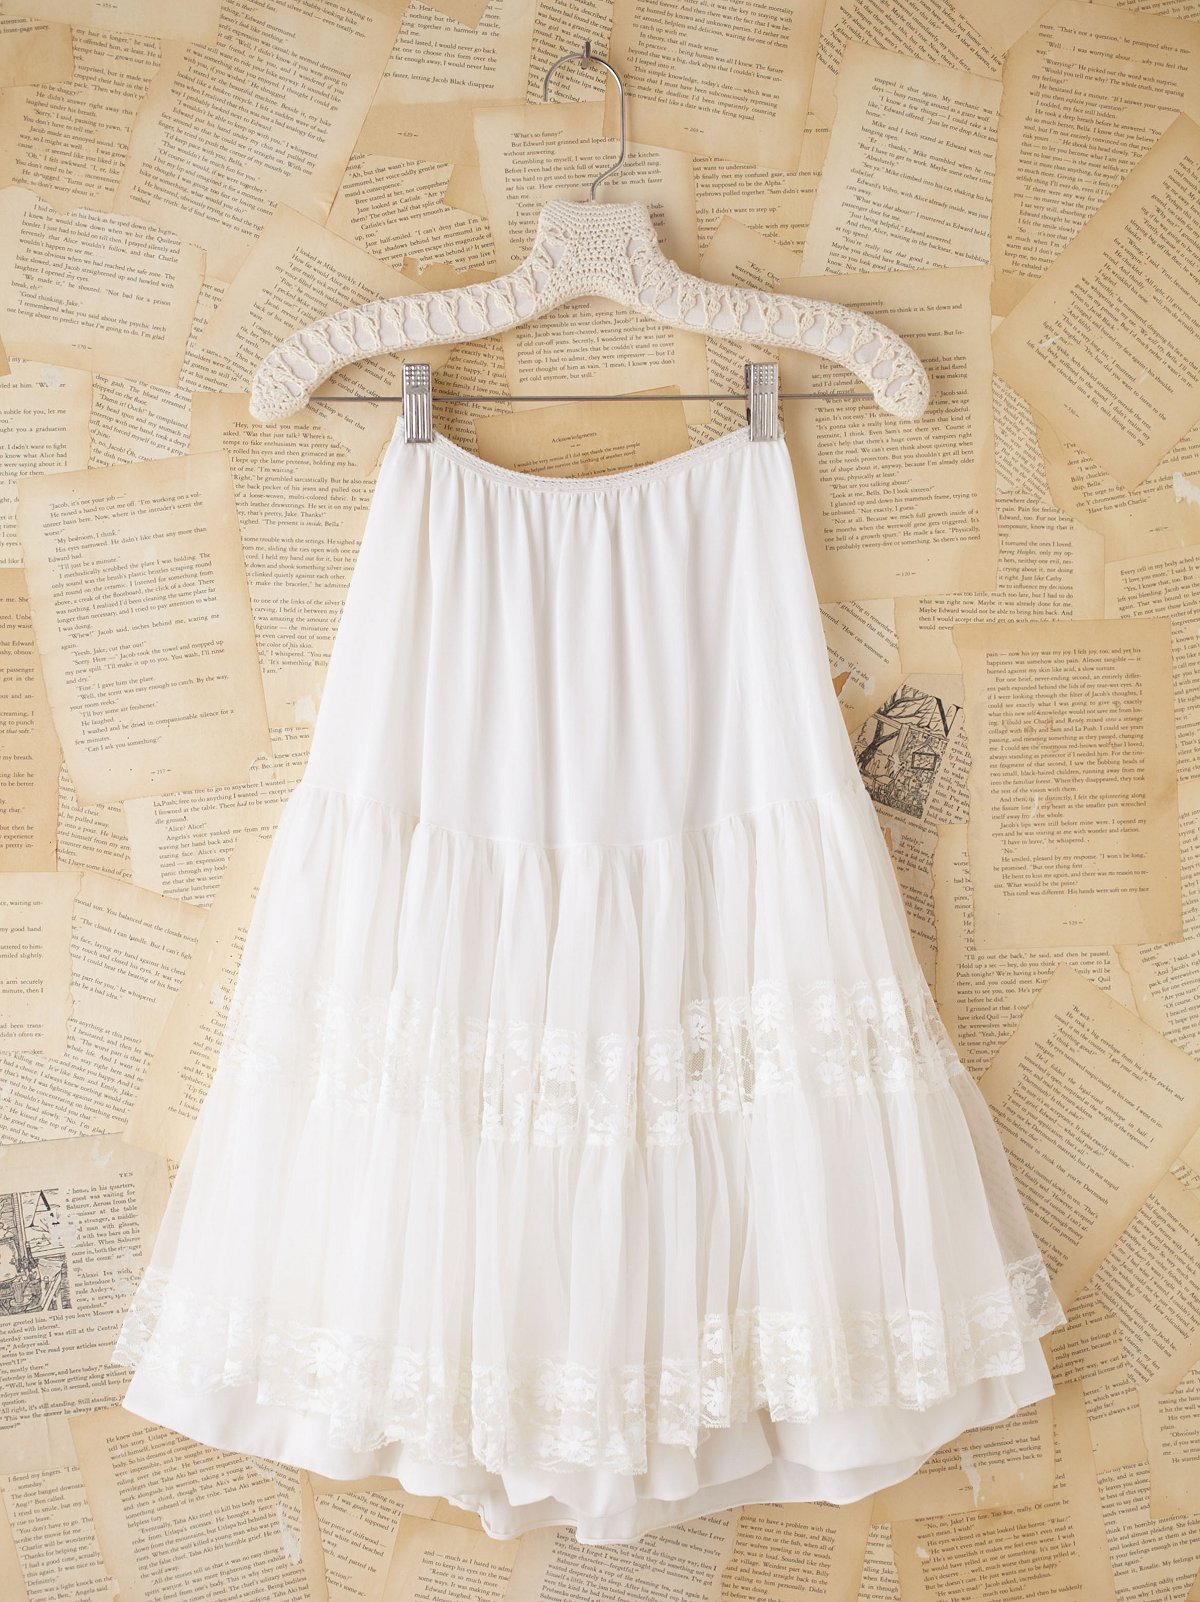 Vintage Princess Skirt